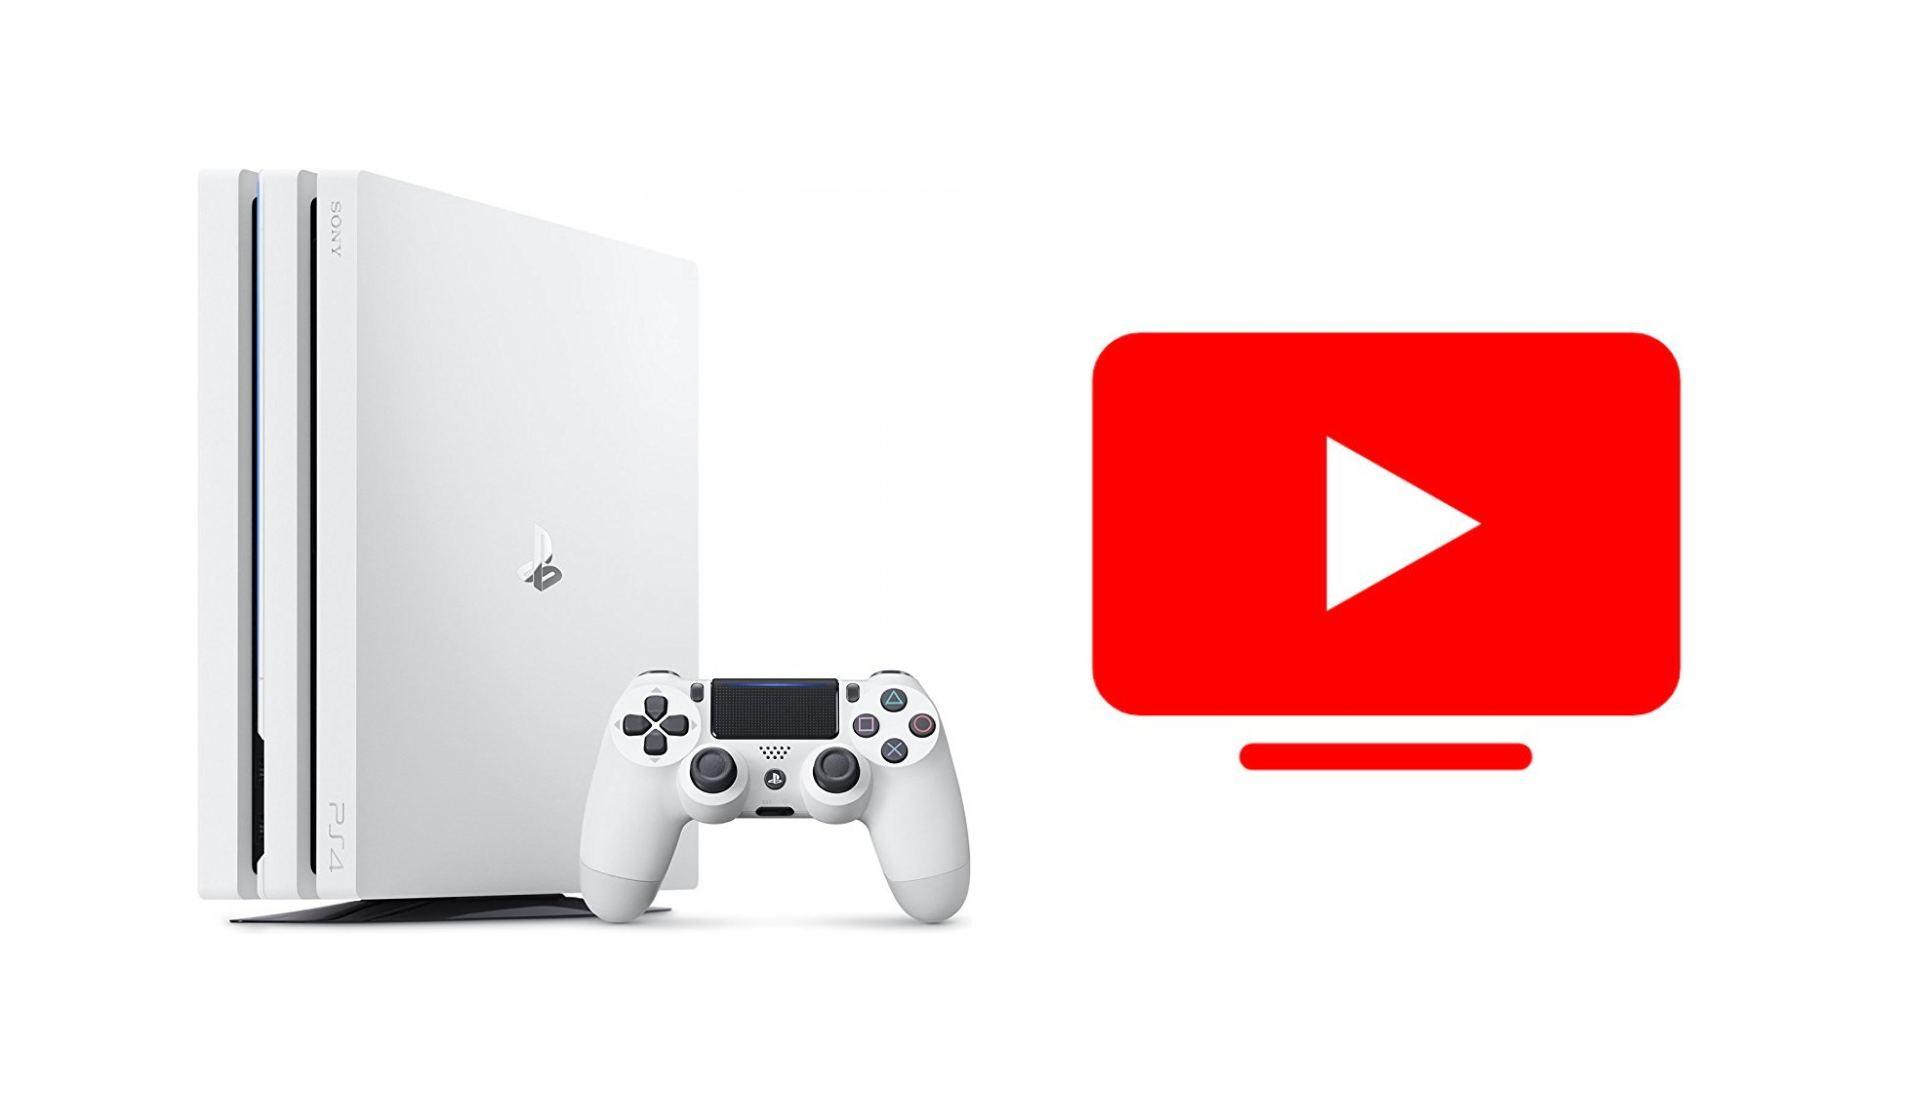 YouTube TV to replace Playstation VUE on the PS4 by month's end